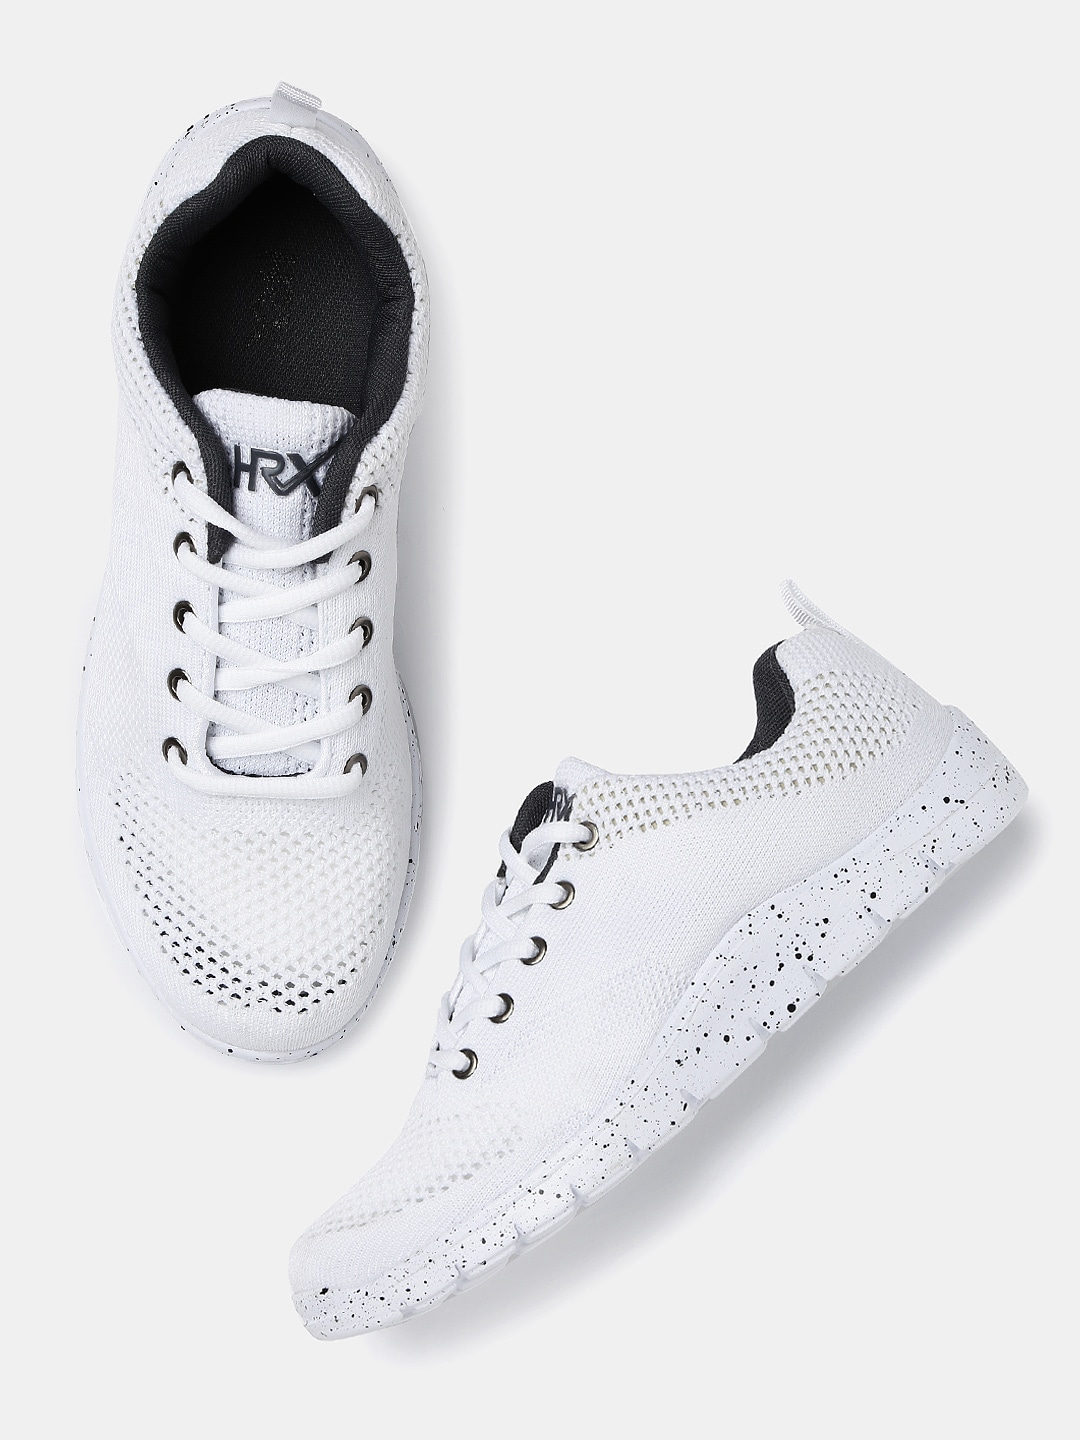 15c8d572a7b Hrx White Sneakers - Buy Hrx White Sneakers online in India